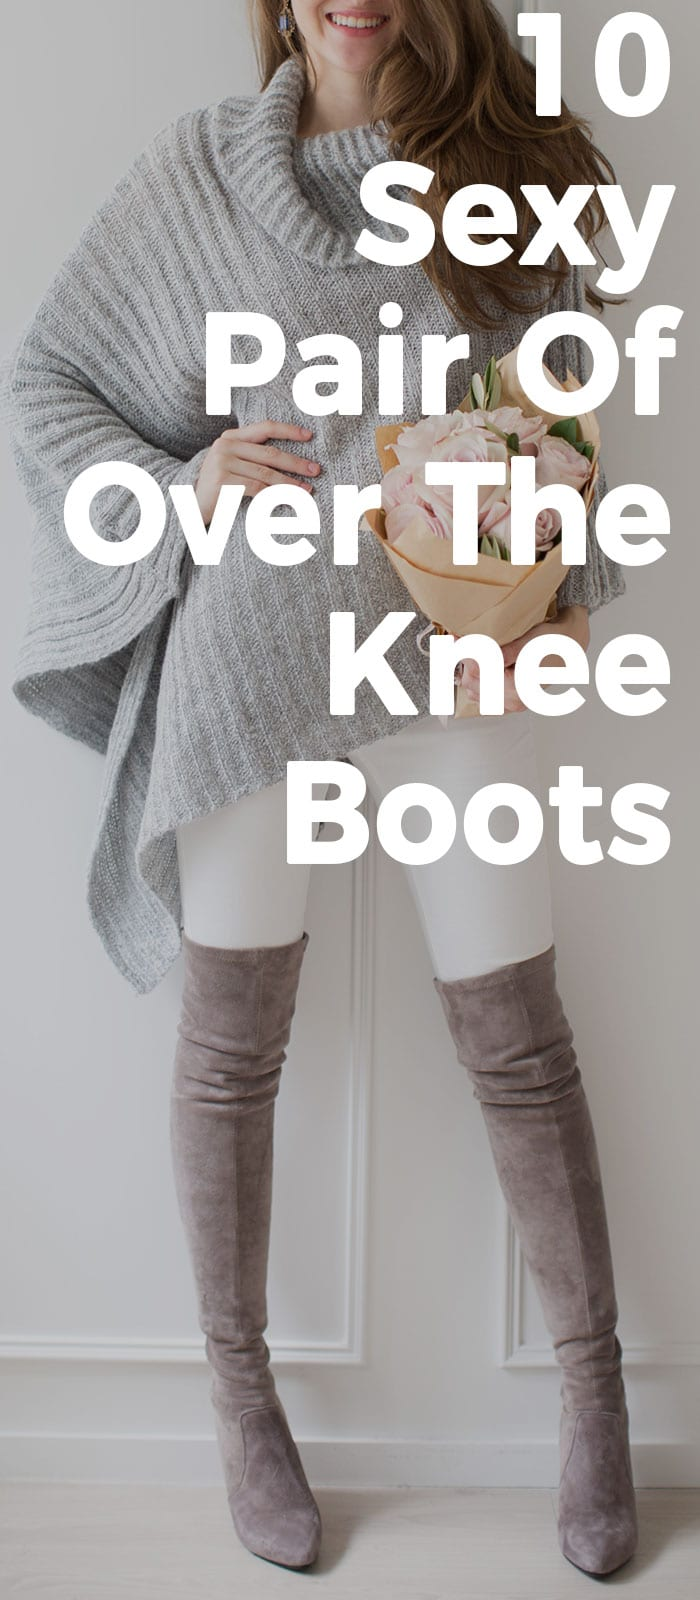 Sexy Pair Of Over The Knee Boots That Are High On Trend.